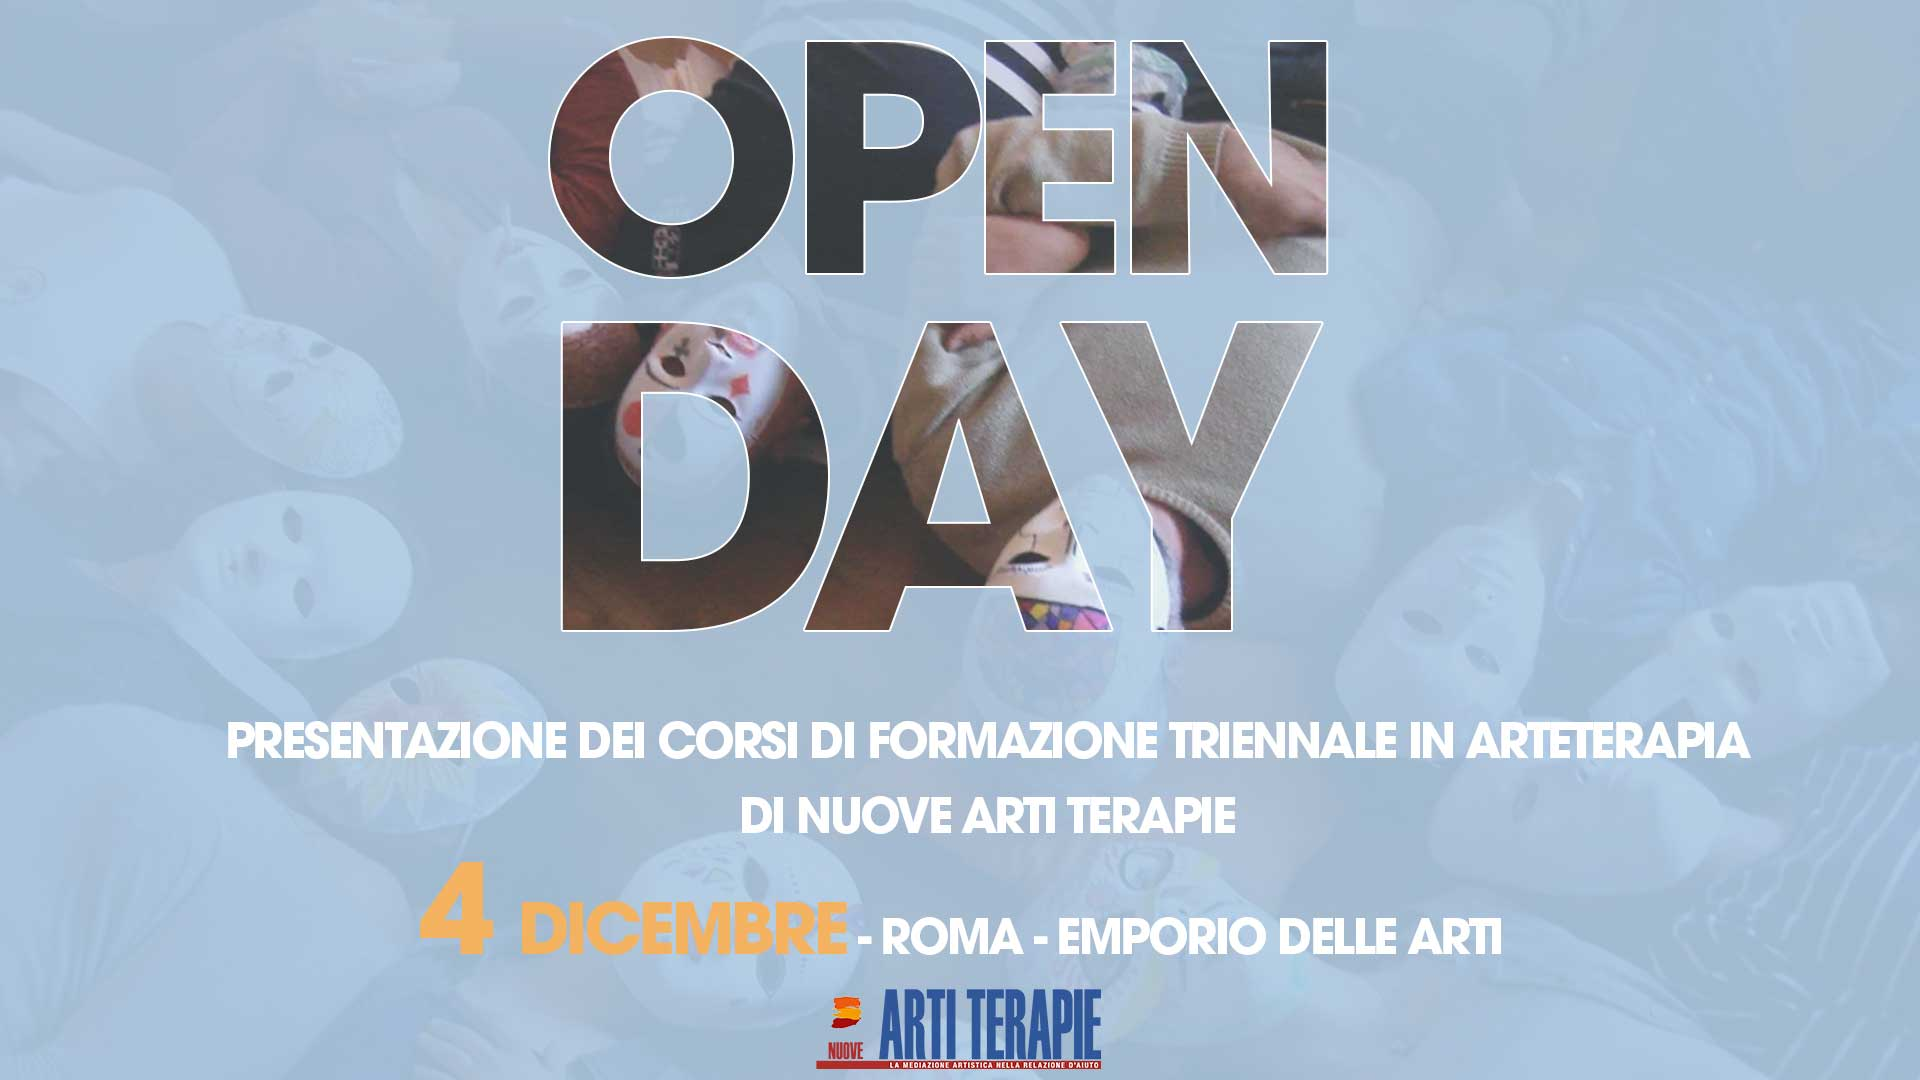 Open Day Arteterapia - Roma